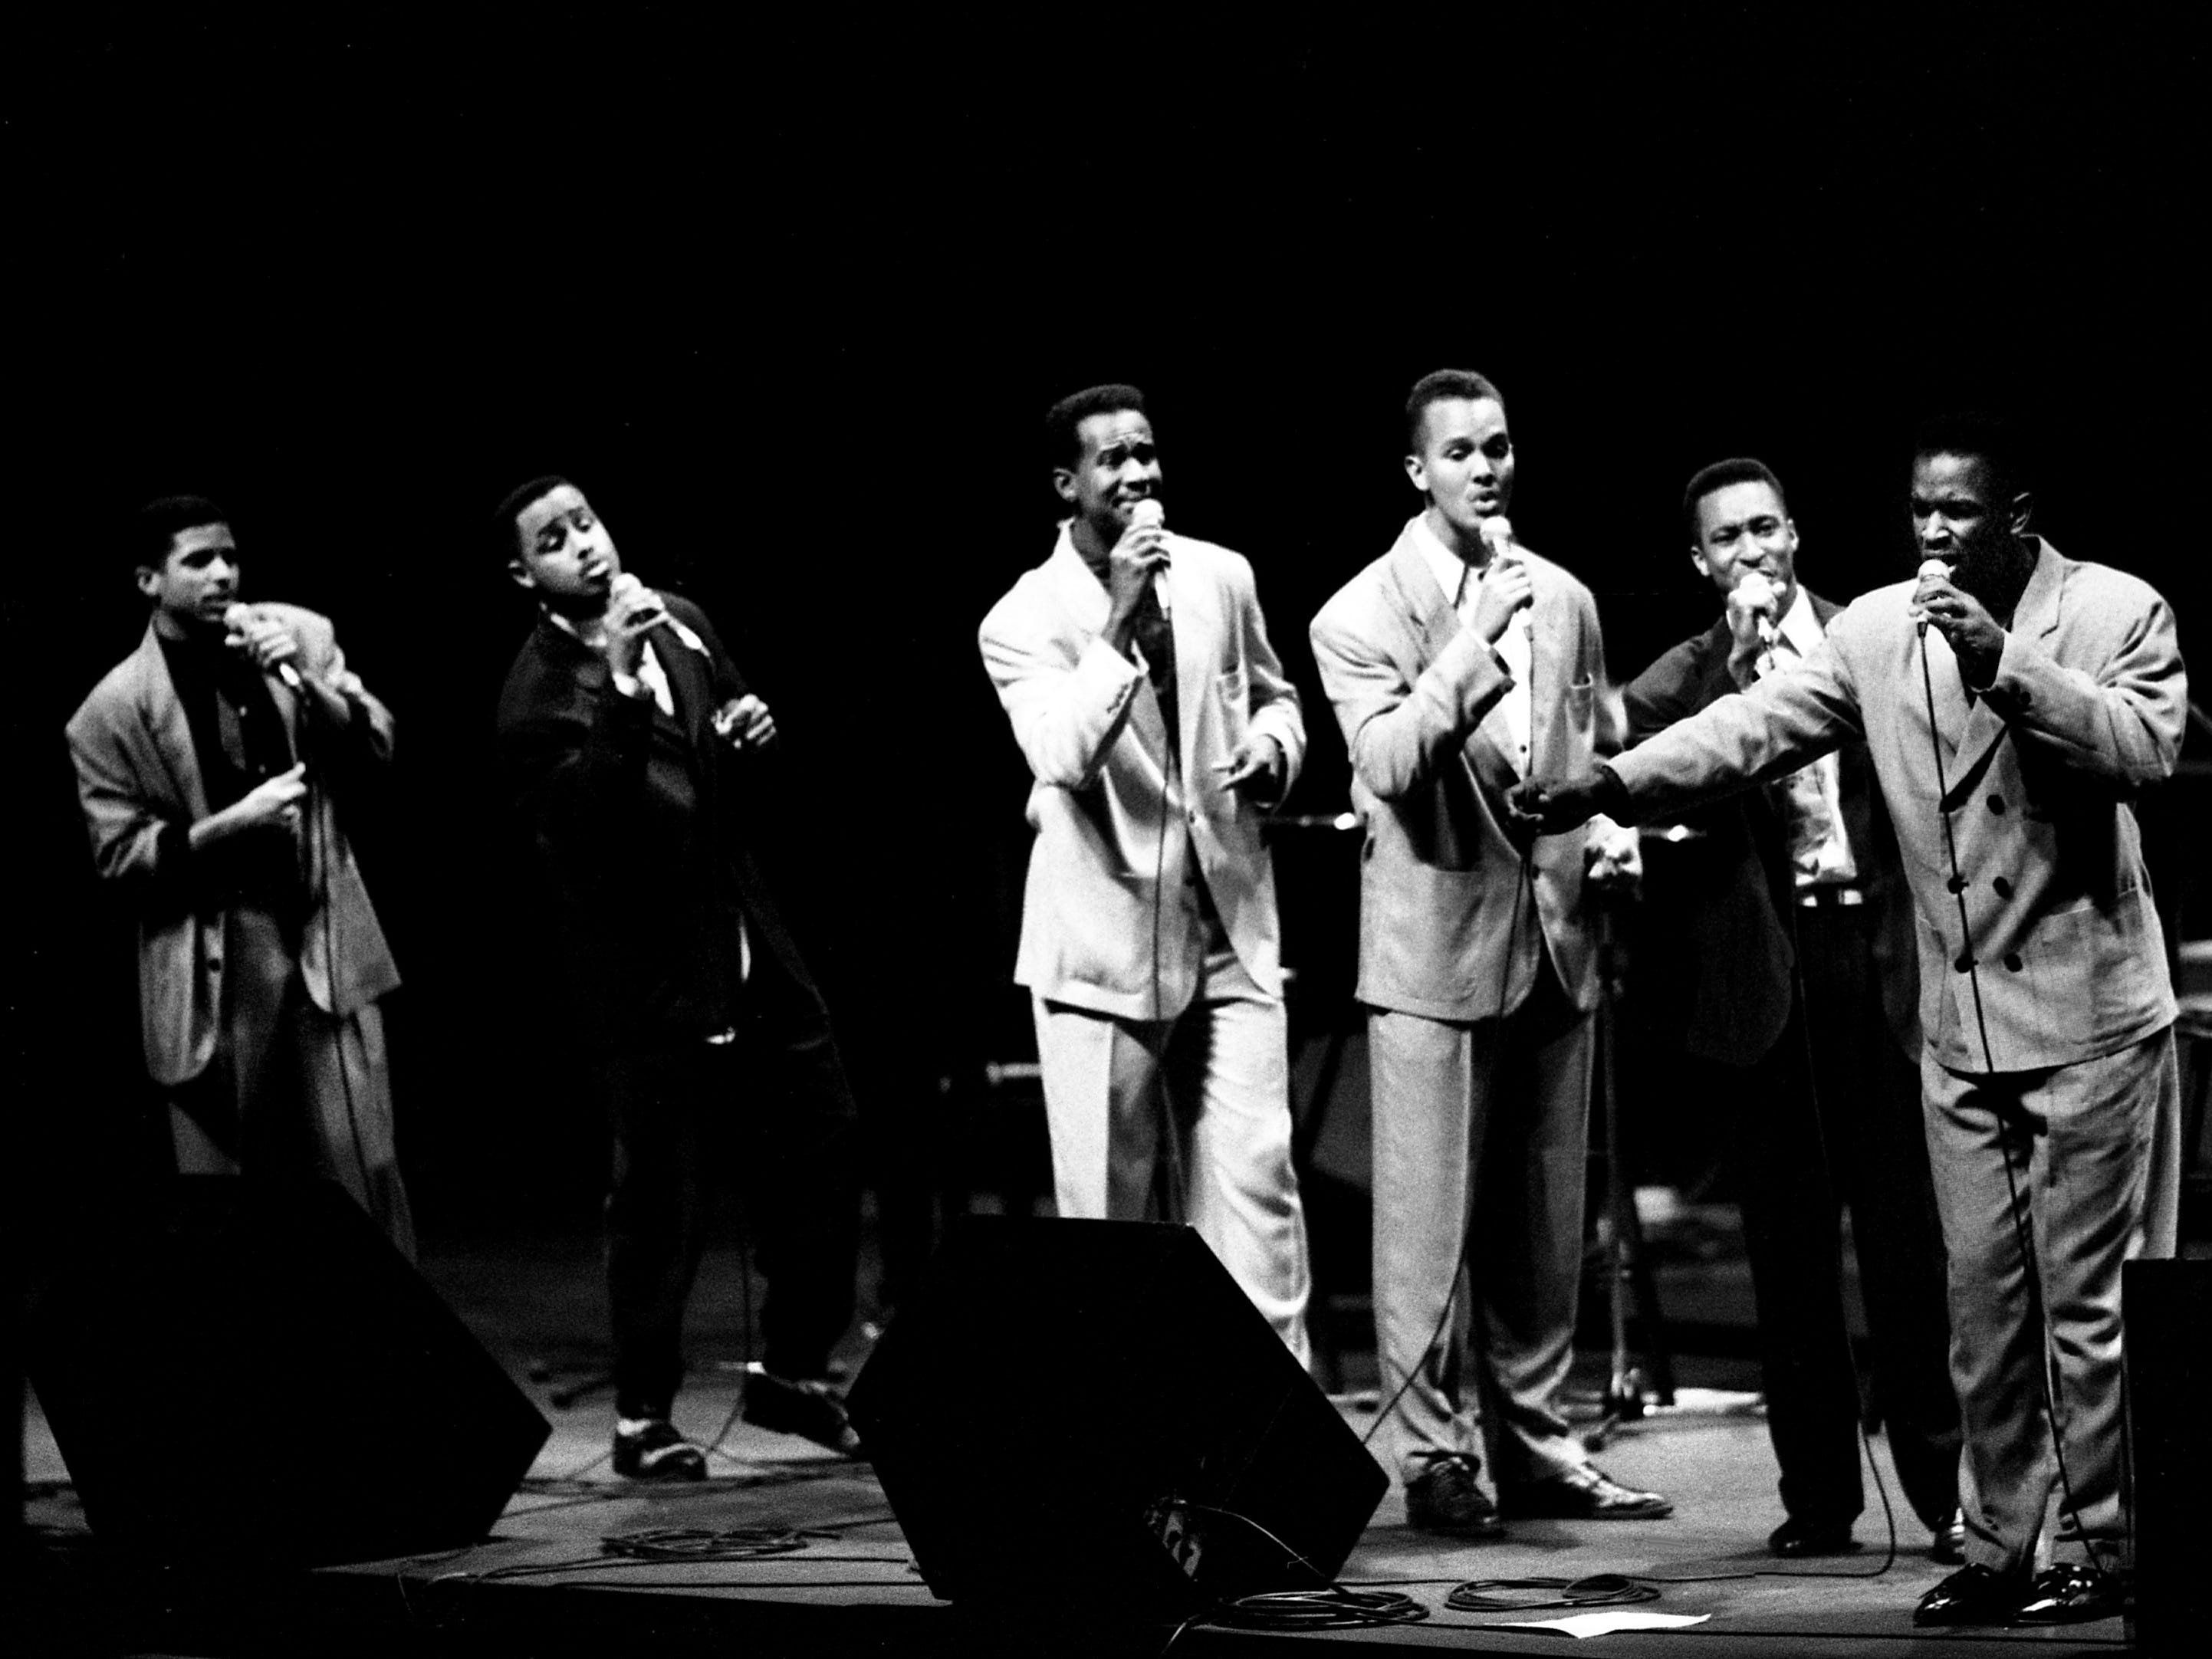 Take 6, who walked off with two Grammy Awards in February after less than a year in professional music, performs before a hometown crowd during a sold-out concert at the Tennessee Performing Arts Center on March 19, 1989.